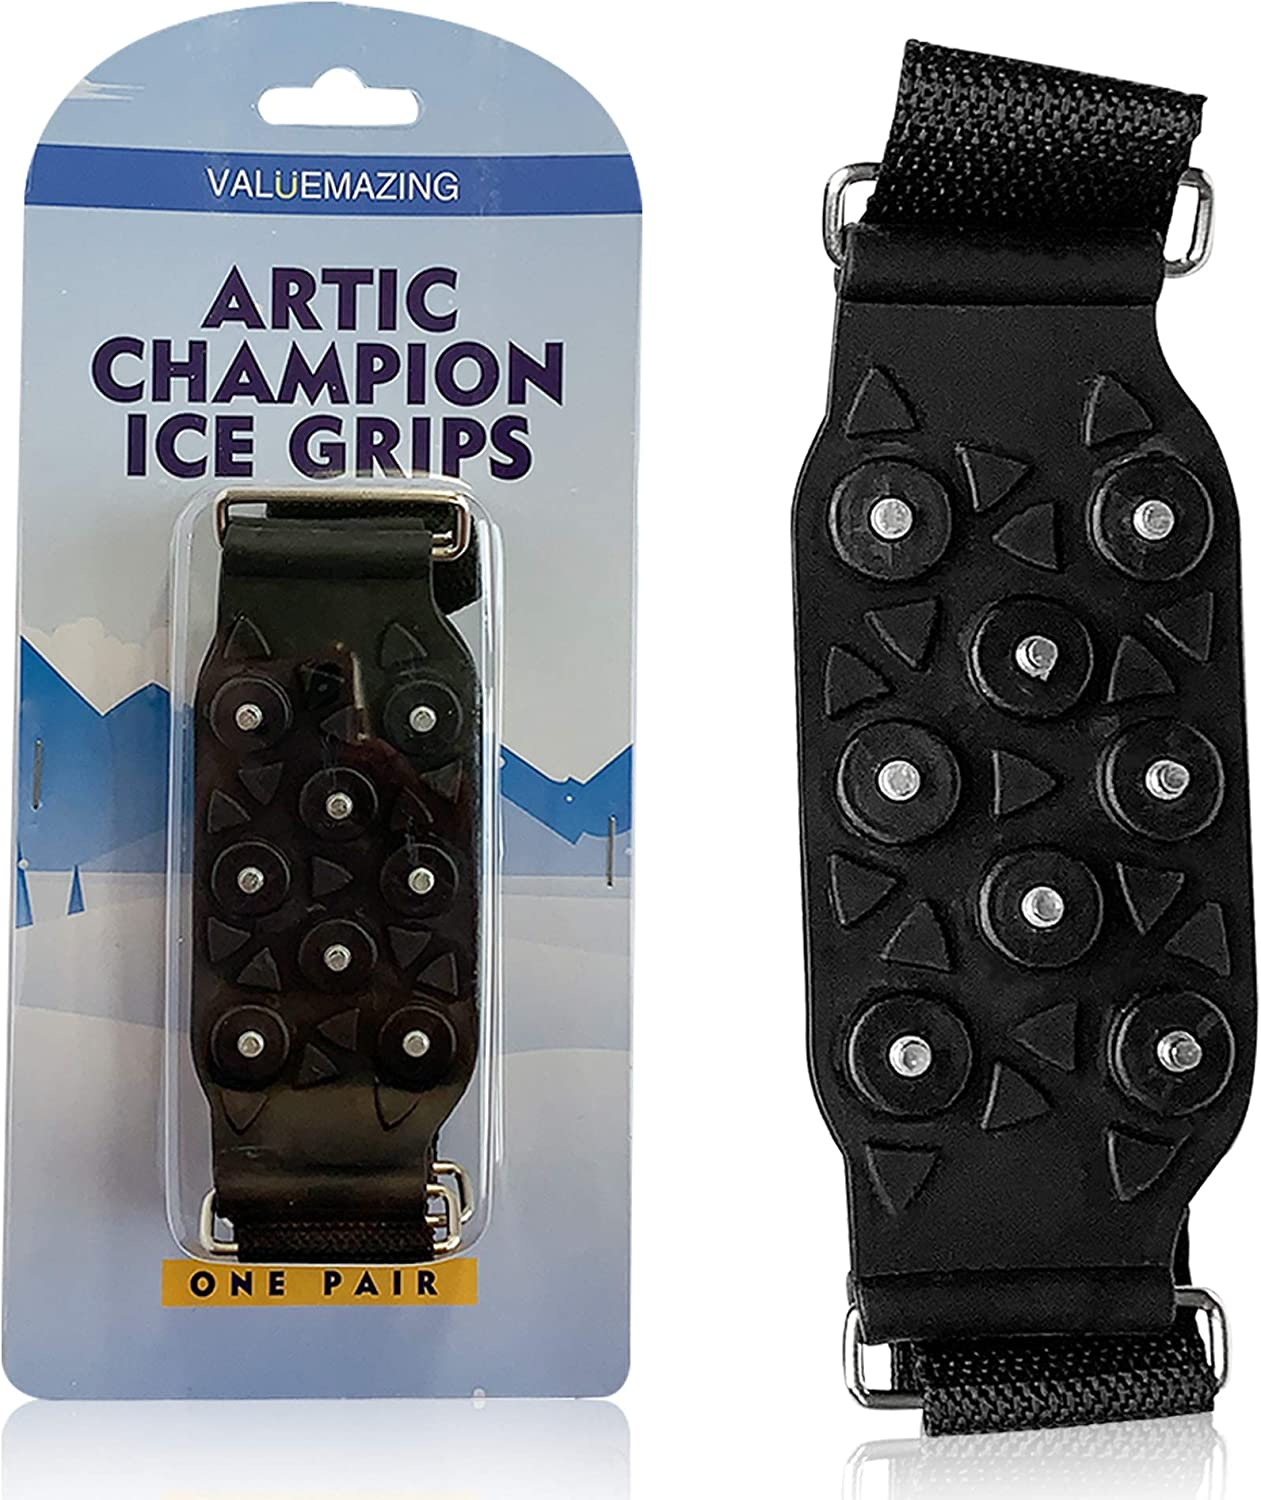 Valuemazing Arctic Champion Ice Grips Pair. Ultimate Ice & Snow Traction Cleats for Anti-Slip Soles. Fits Big Boots & Shoes Sizes 8.5-10.5. Elastic, Tough Silicone with Rugged Steel (Black, Large)